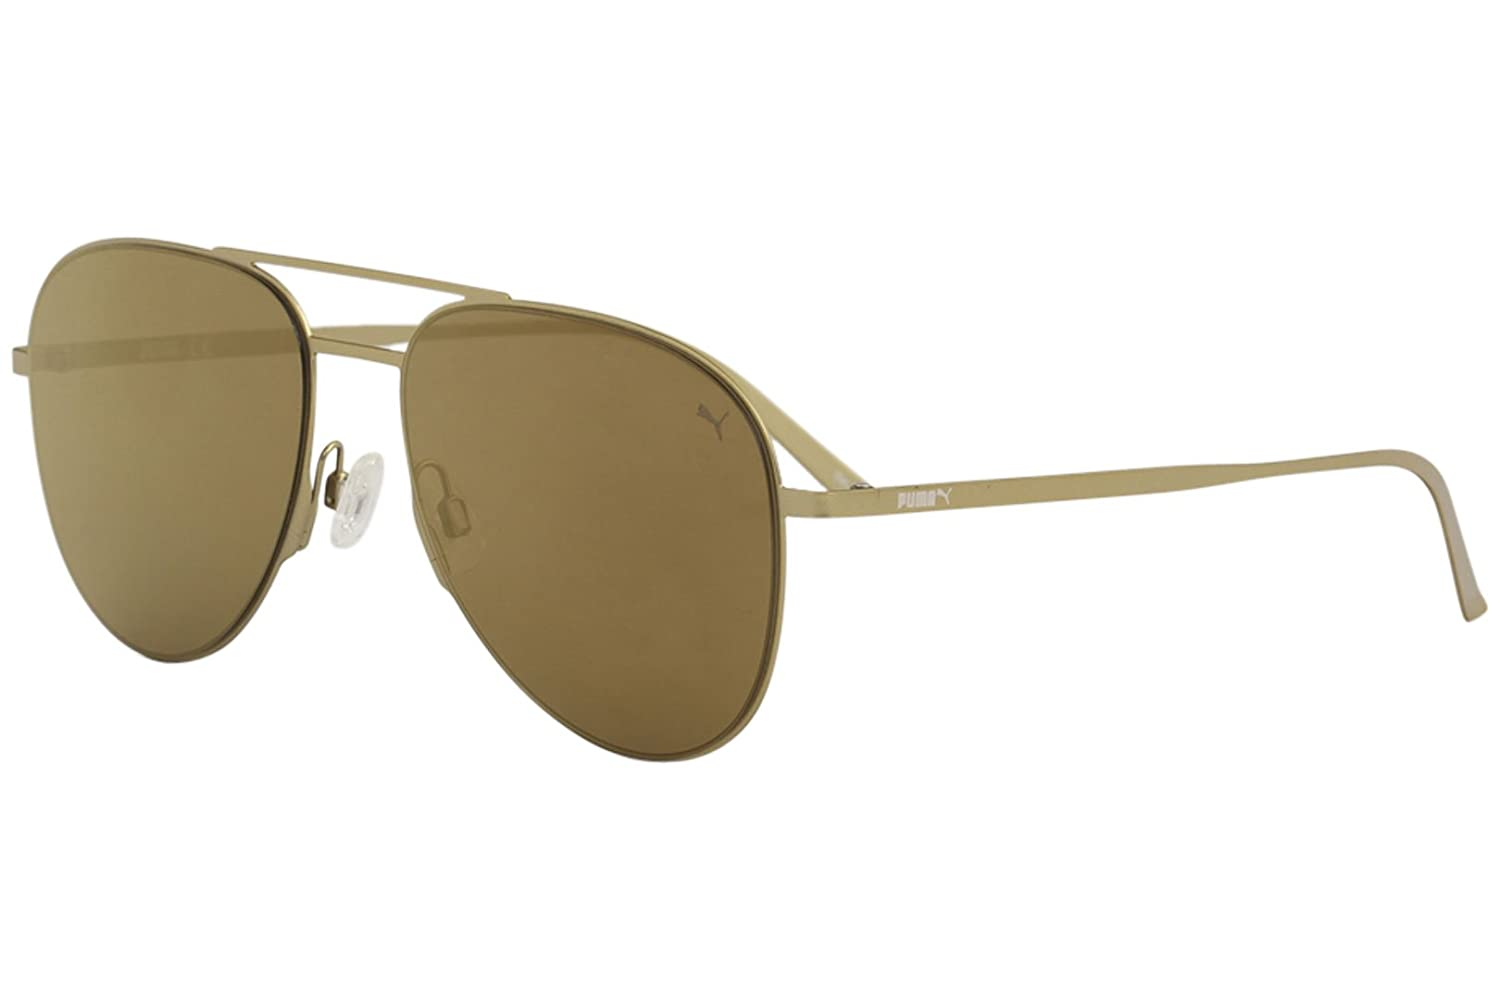 Amazon.com: anteojos de sol Puma PU 0160 S- 005 oro/: Clothing